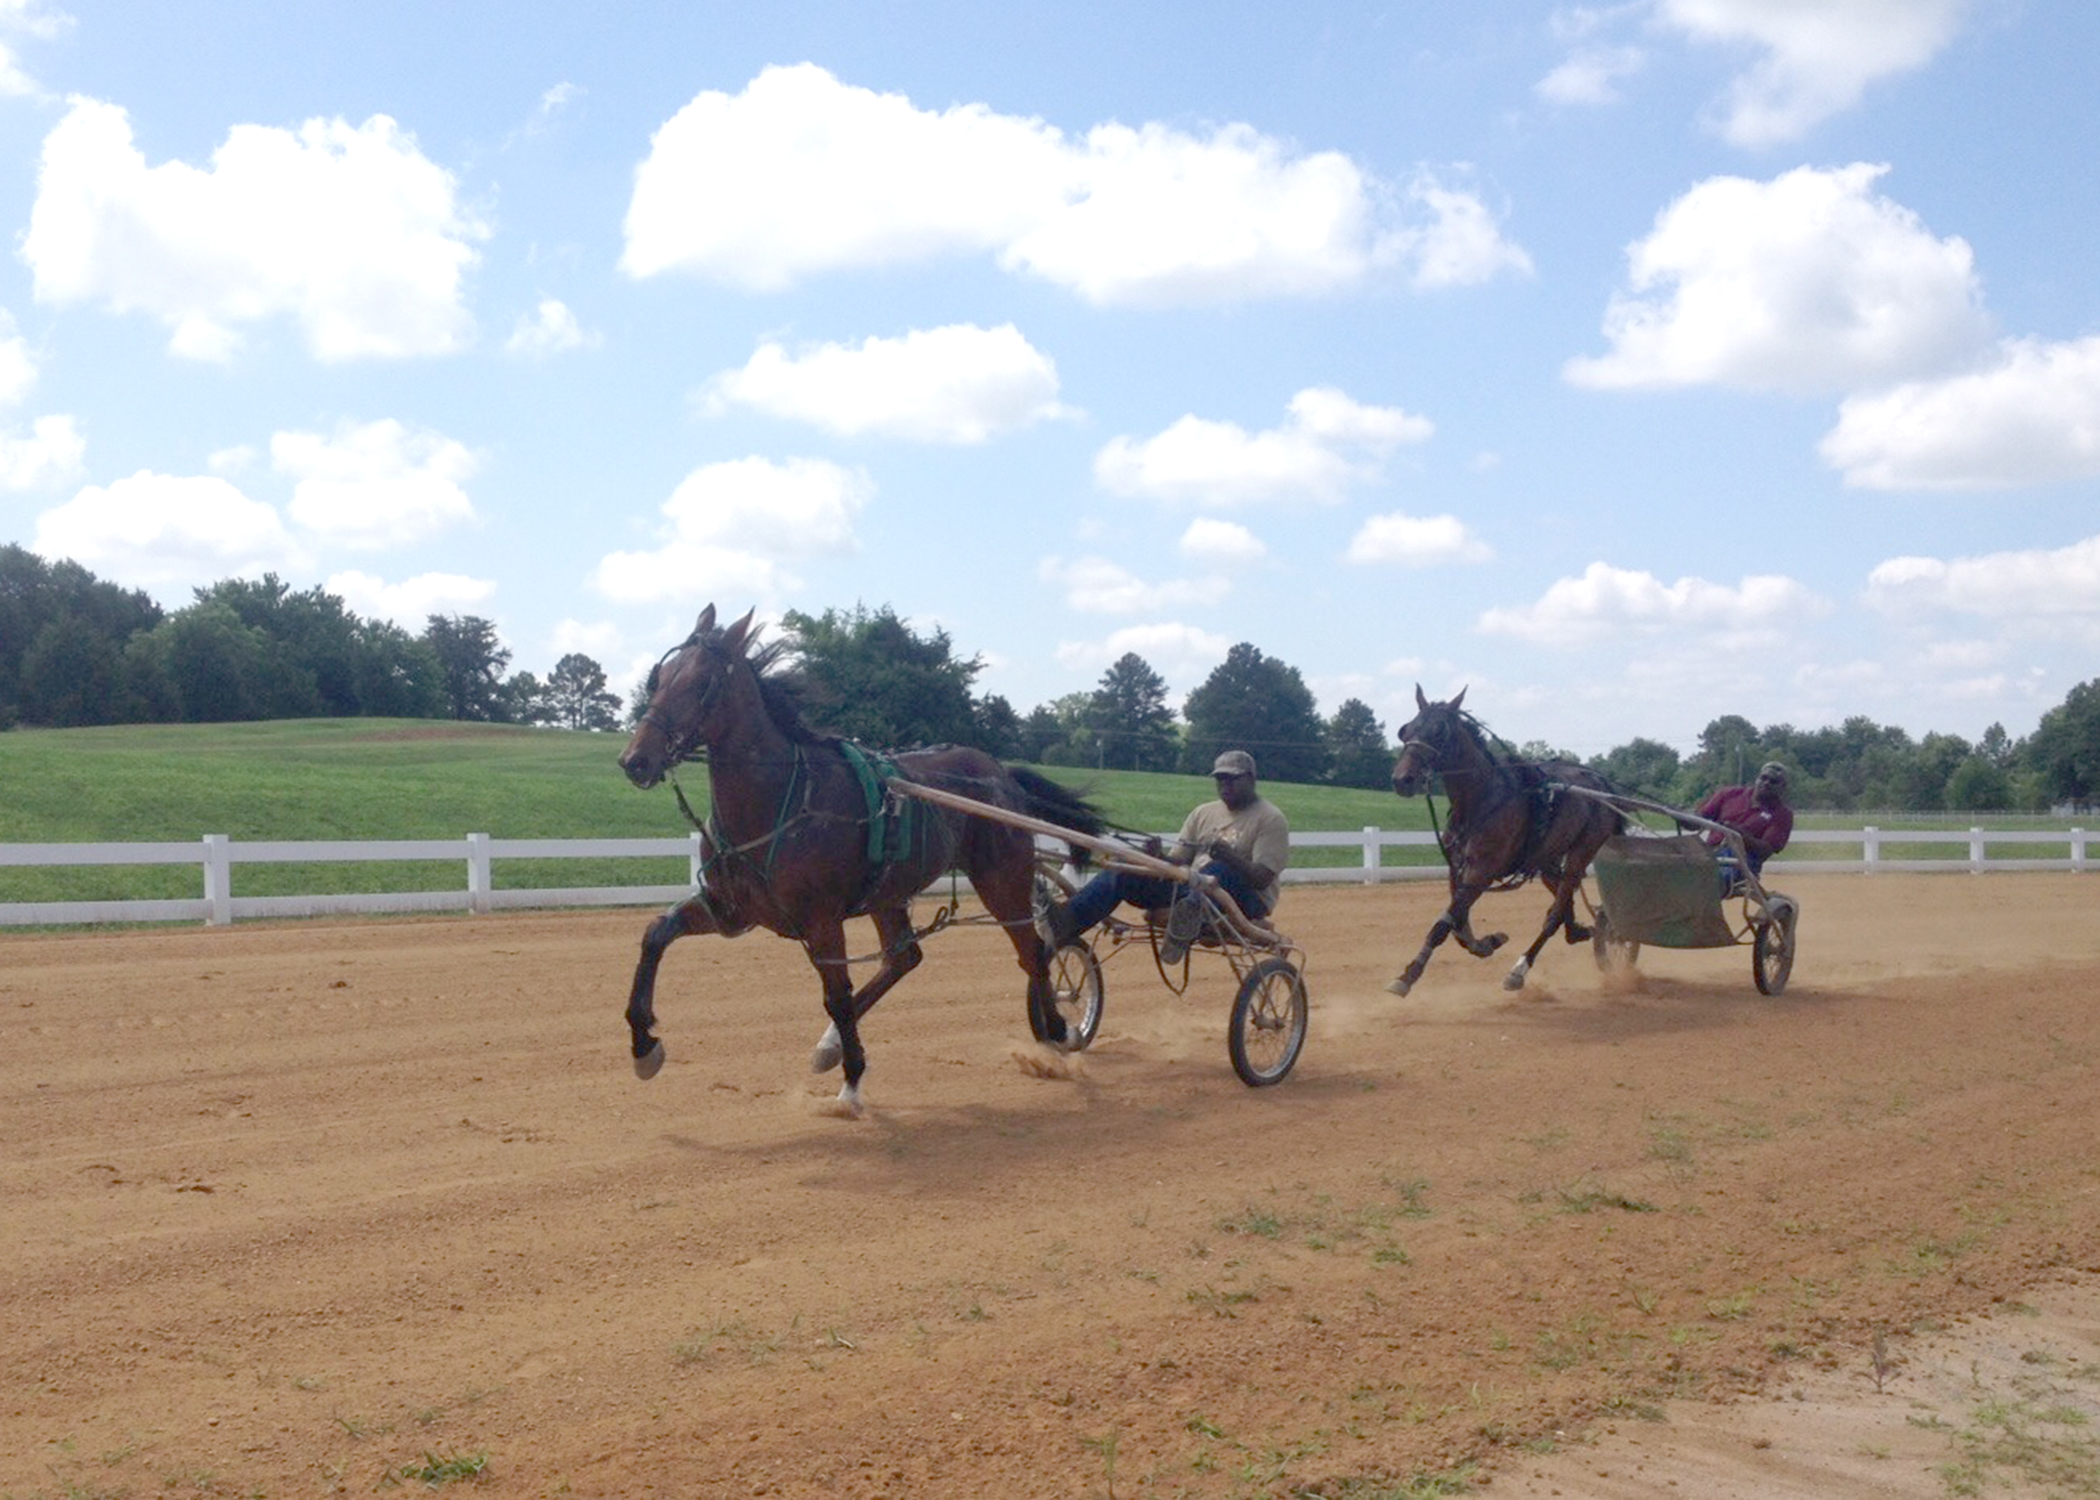 20160506_harness harness racing returns to oktibbeha county mississippi state